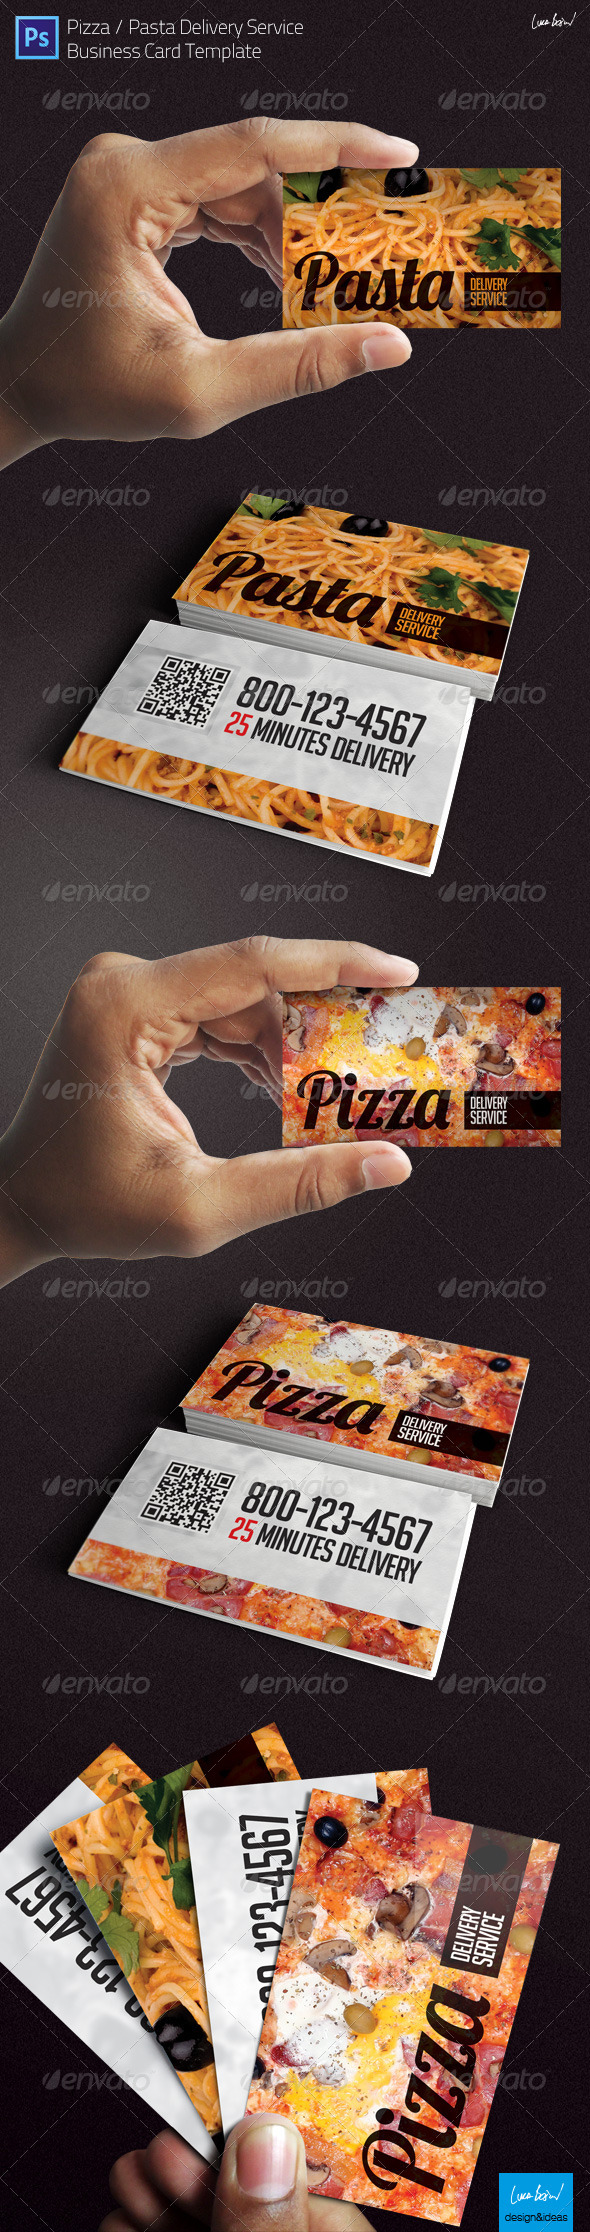 Business card pizza pasta food delivery service by looca business card pizza pasta food delivery service industry specific business cards colourmoves Choice Image